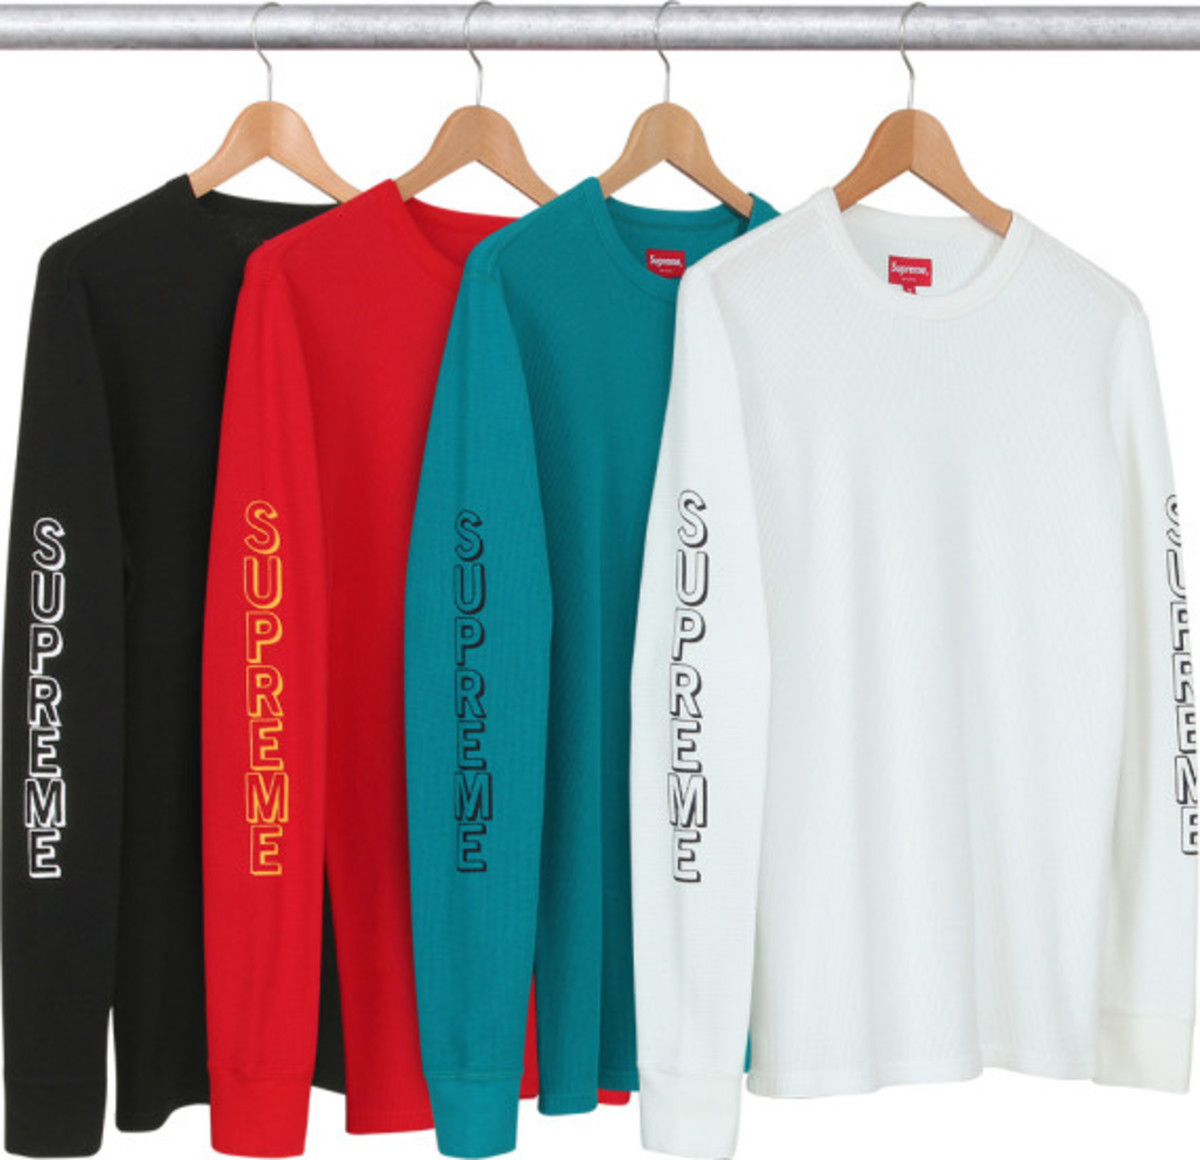 supreme-fall-winter-2013-apparel-collection-107